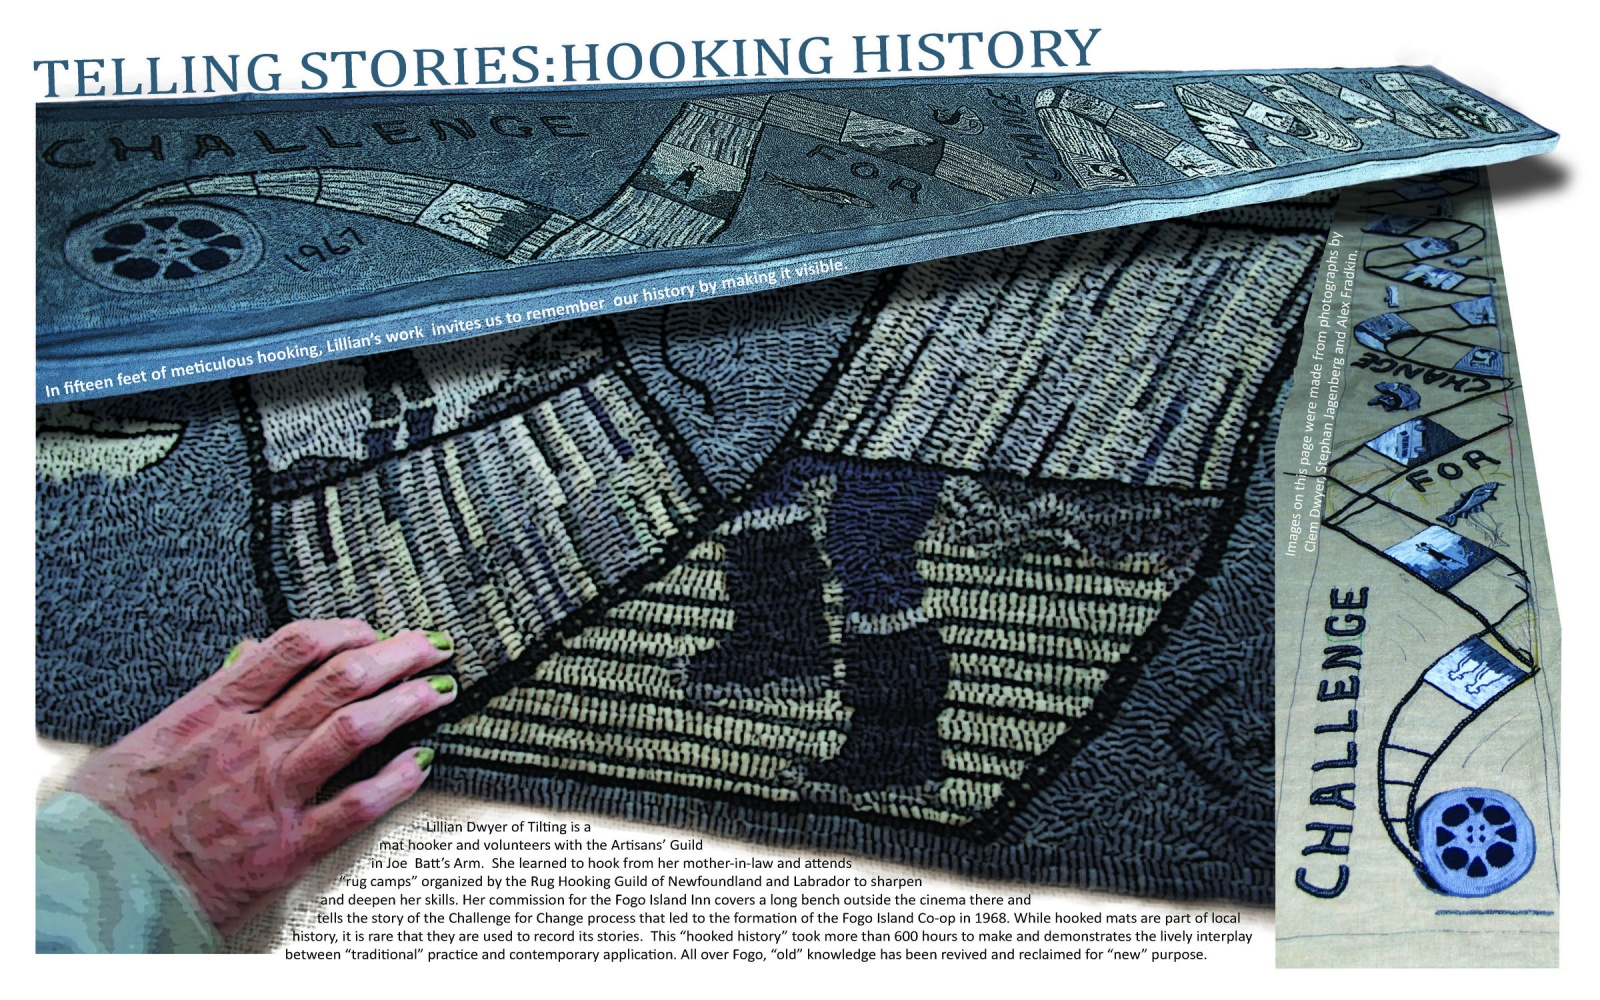 Telling Stories: Hooking History